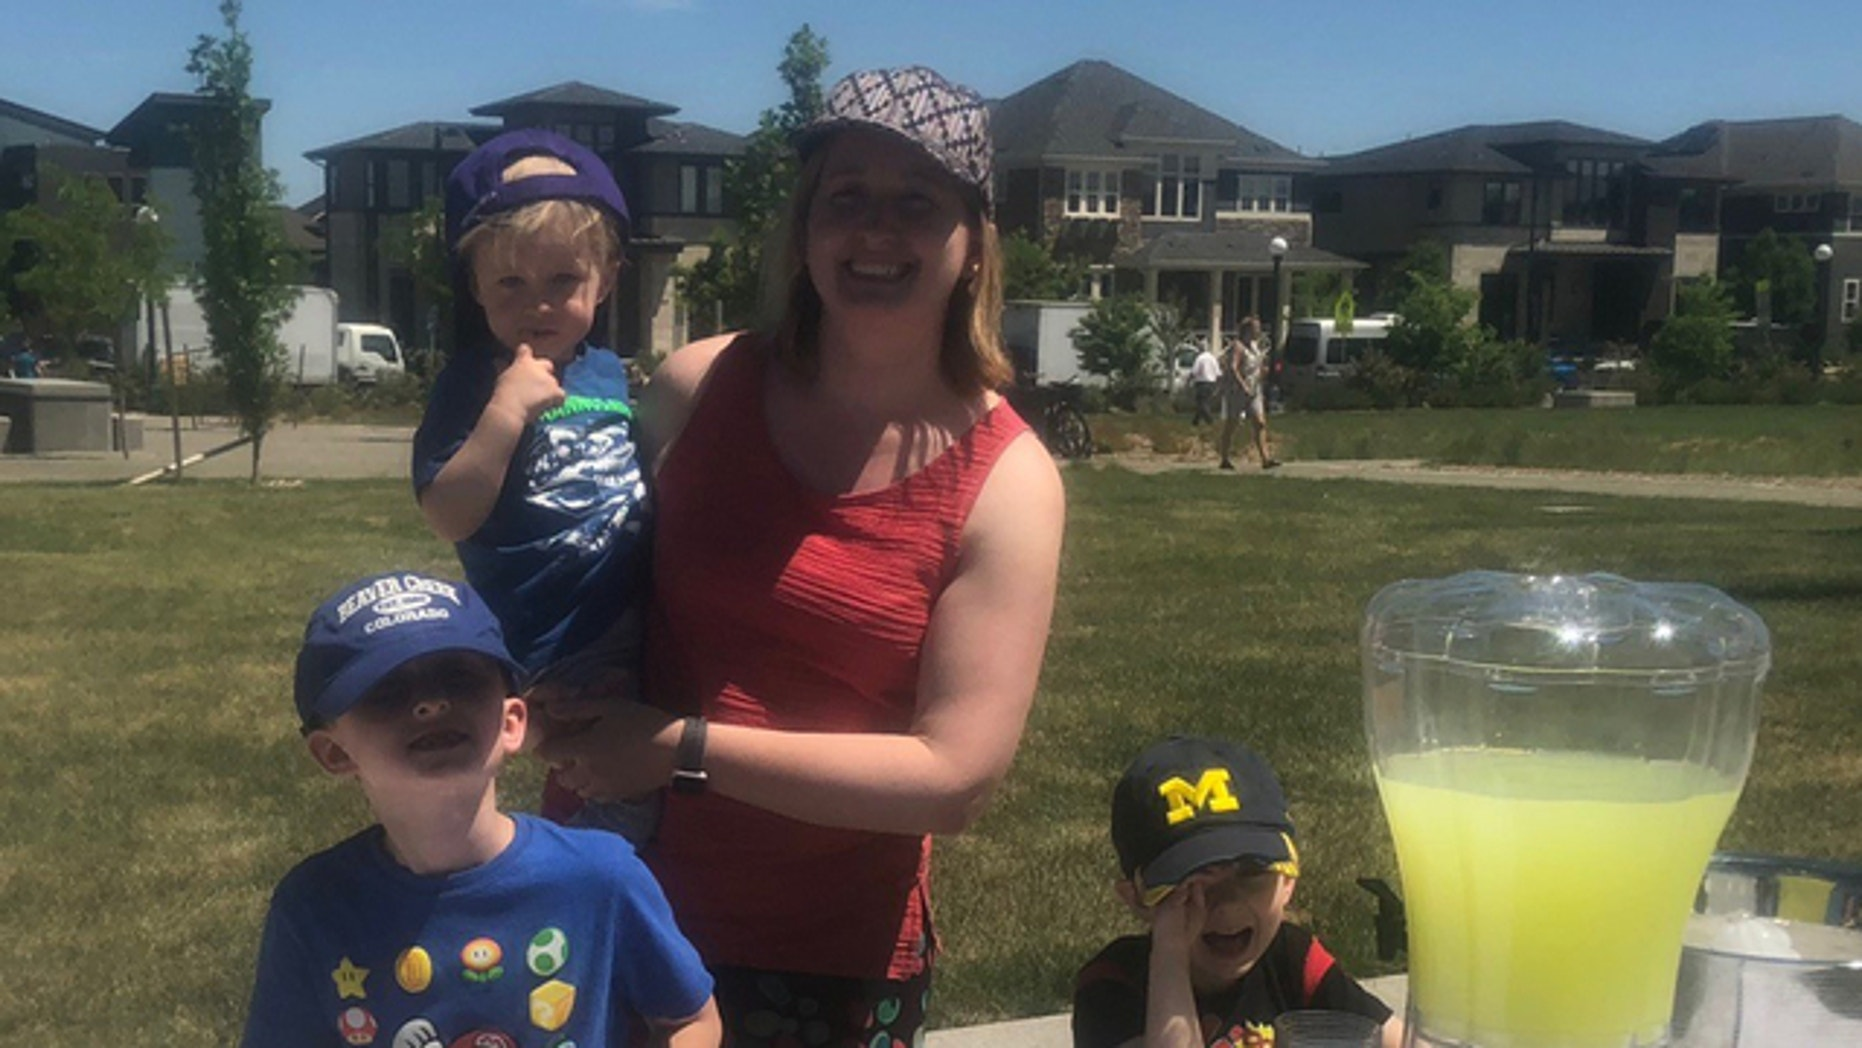 Jennifer Knowles, shown with her sons, says a neighbor complained about her the boys' lemonade stand.